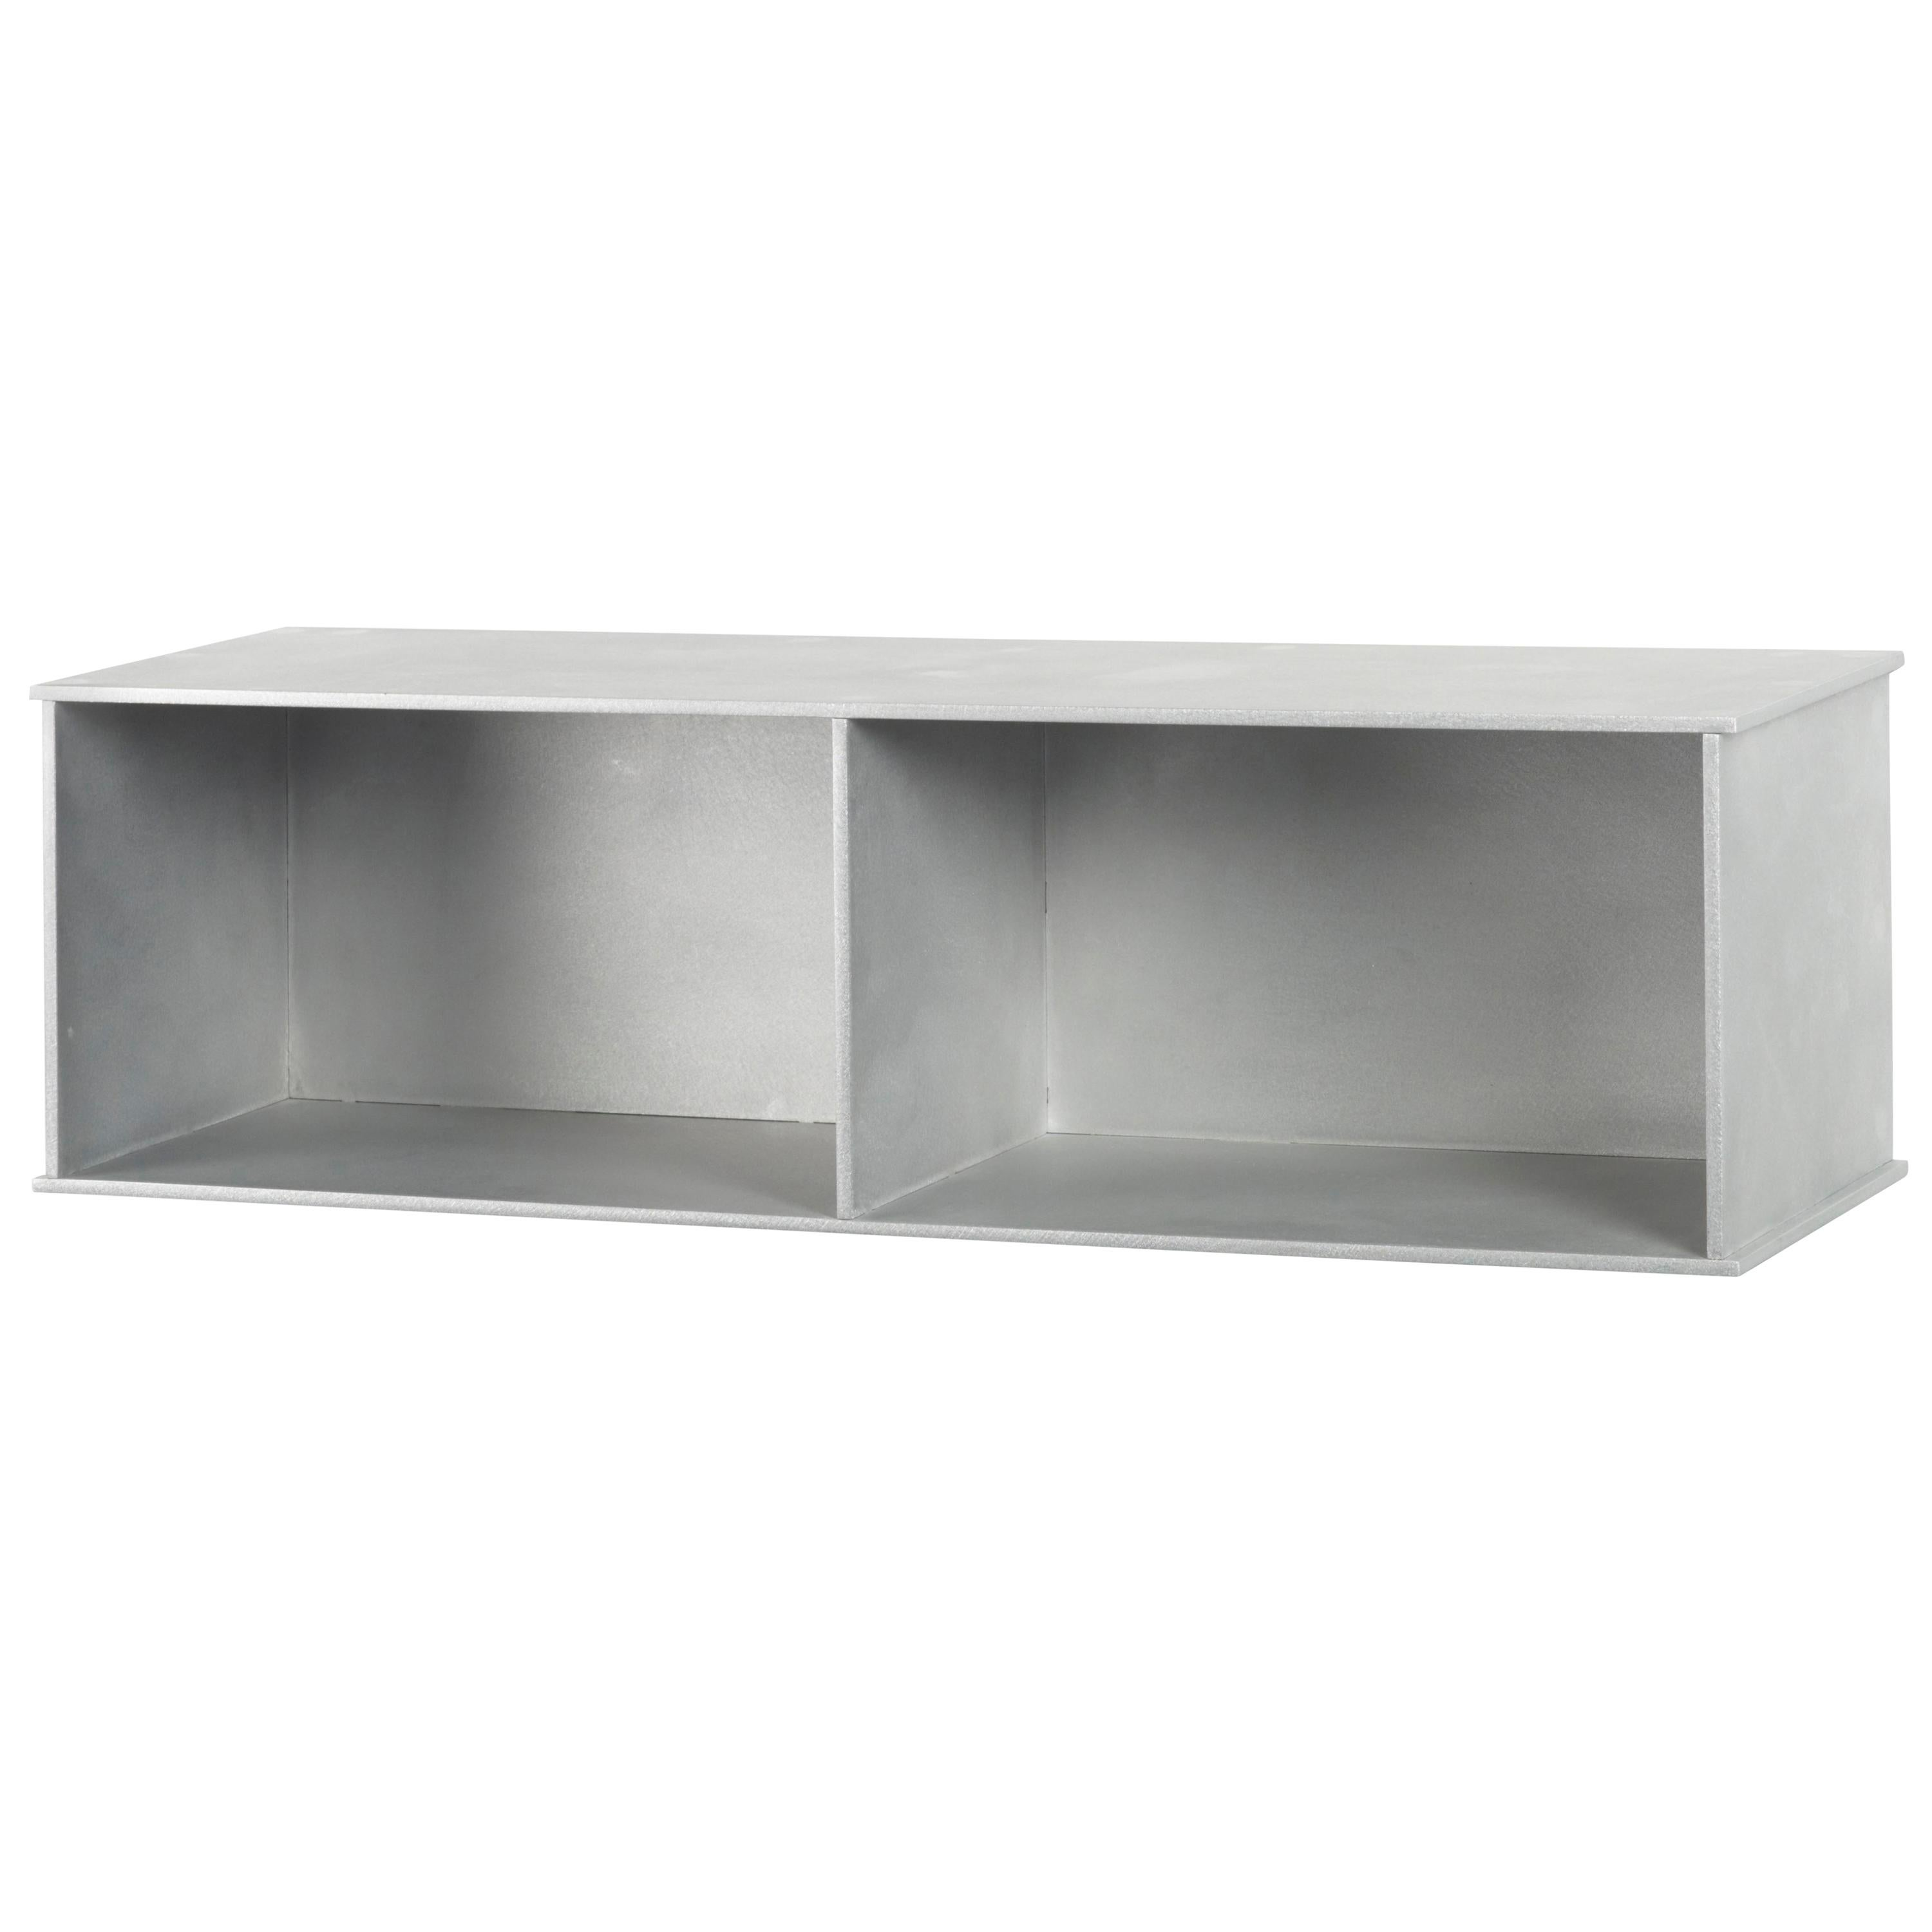 2G Wall Shelf in Waxed and Polished Aluminum Plate by Jonathan Nesci